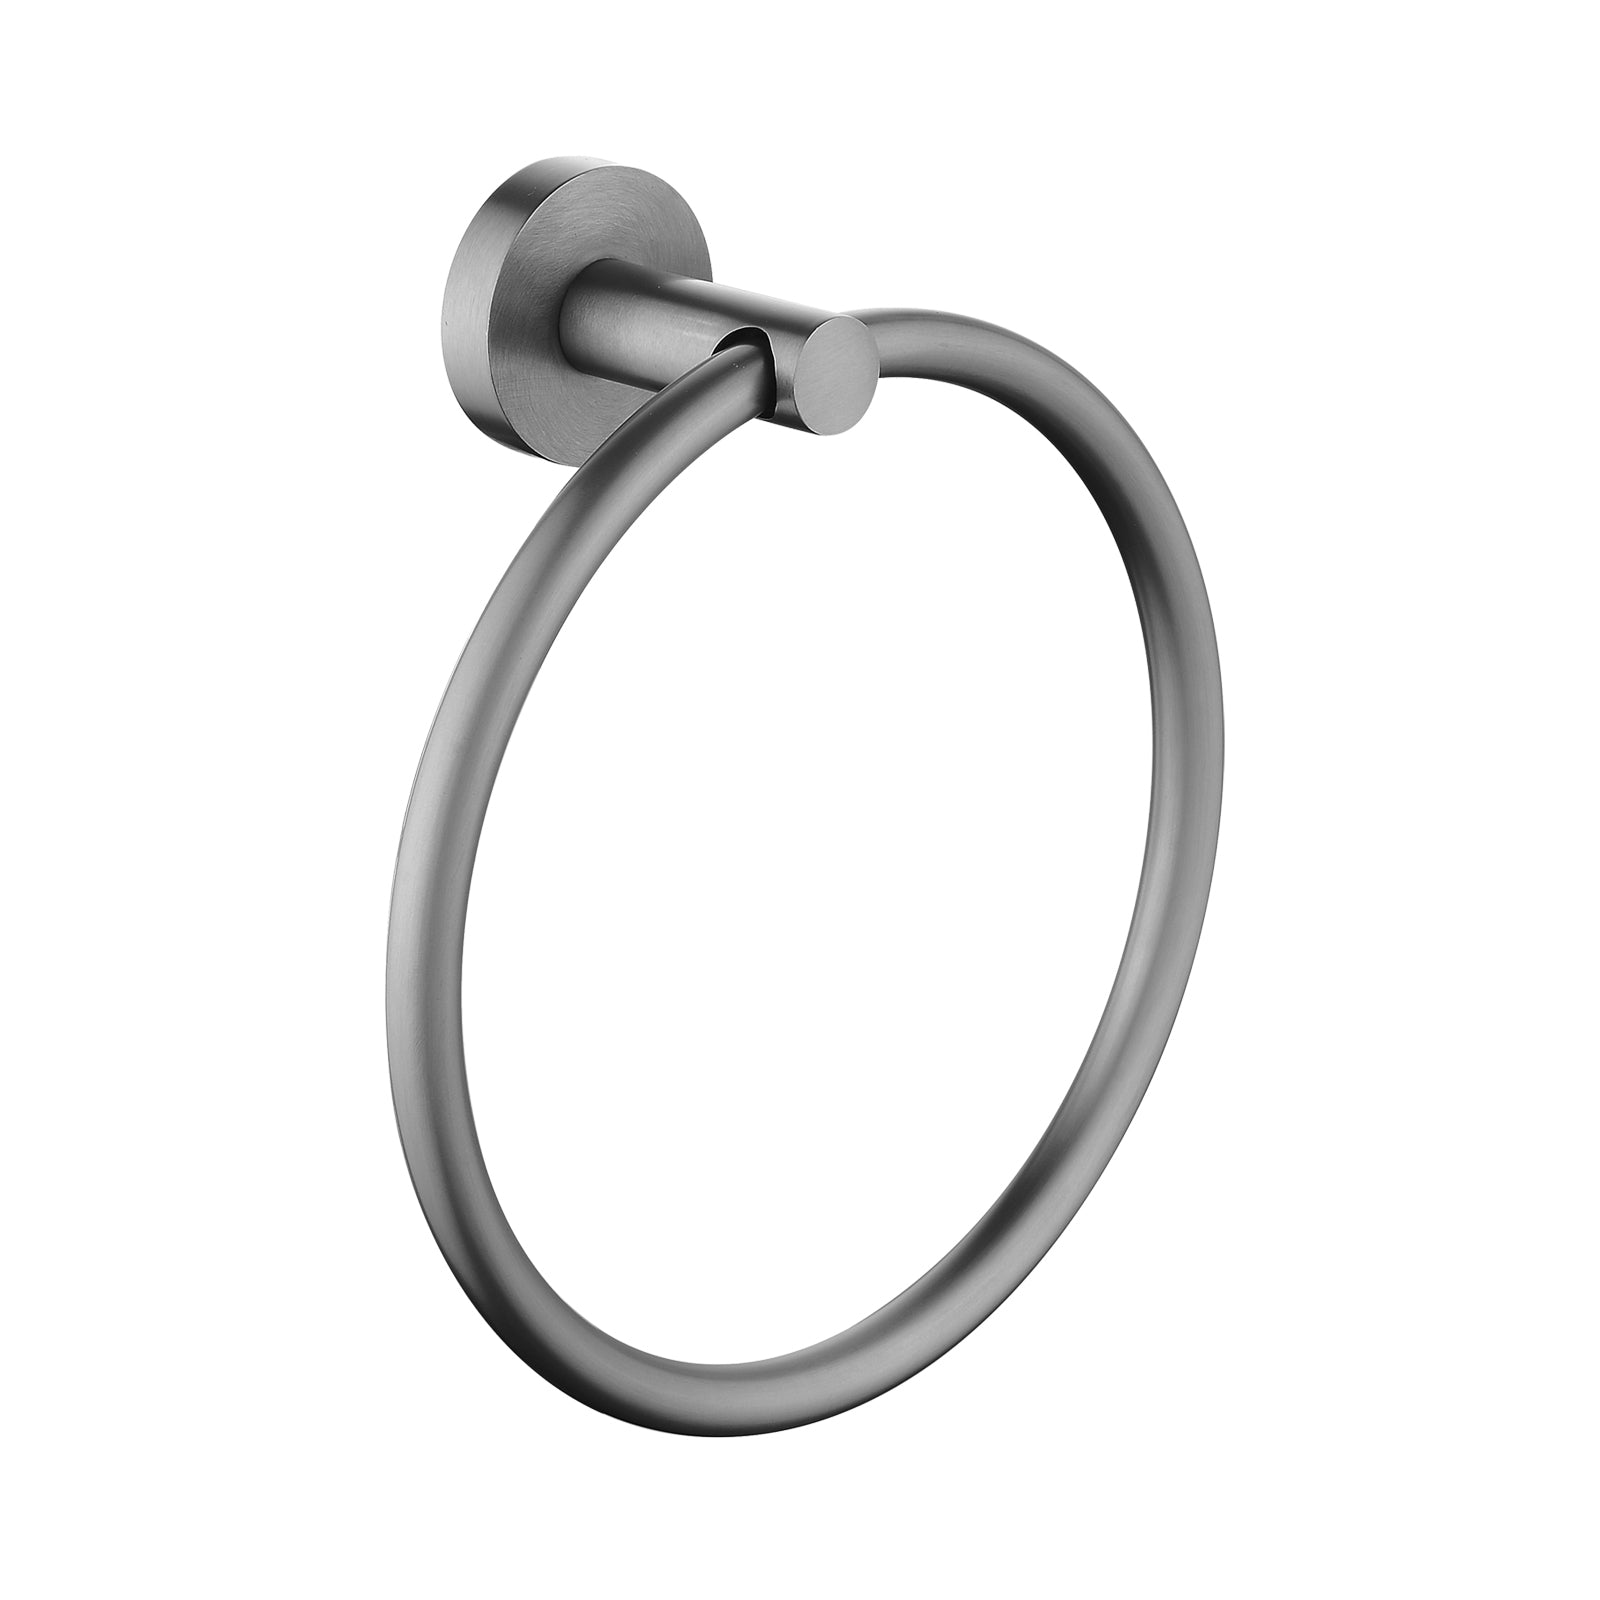 Norico Pentro Gun Metal Grey Round Wall Mounted Round Hand Towel Ring